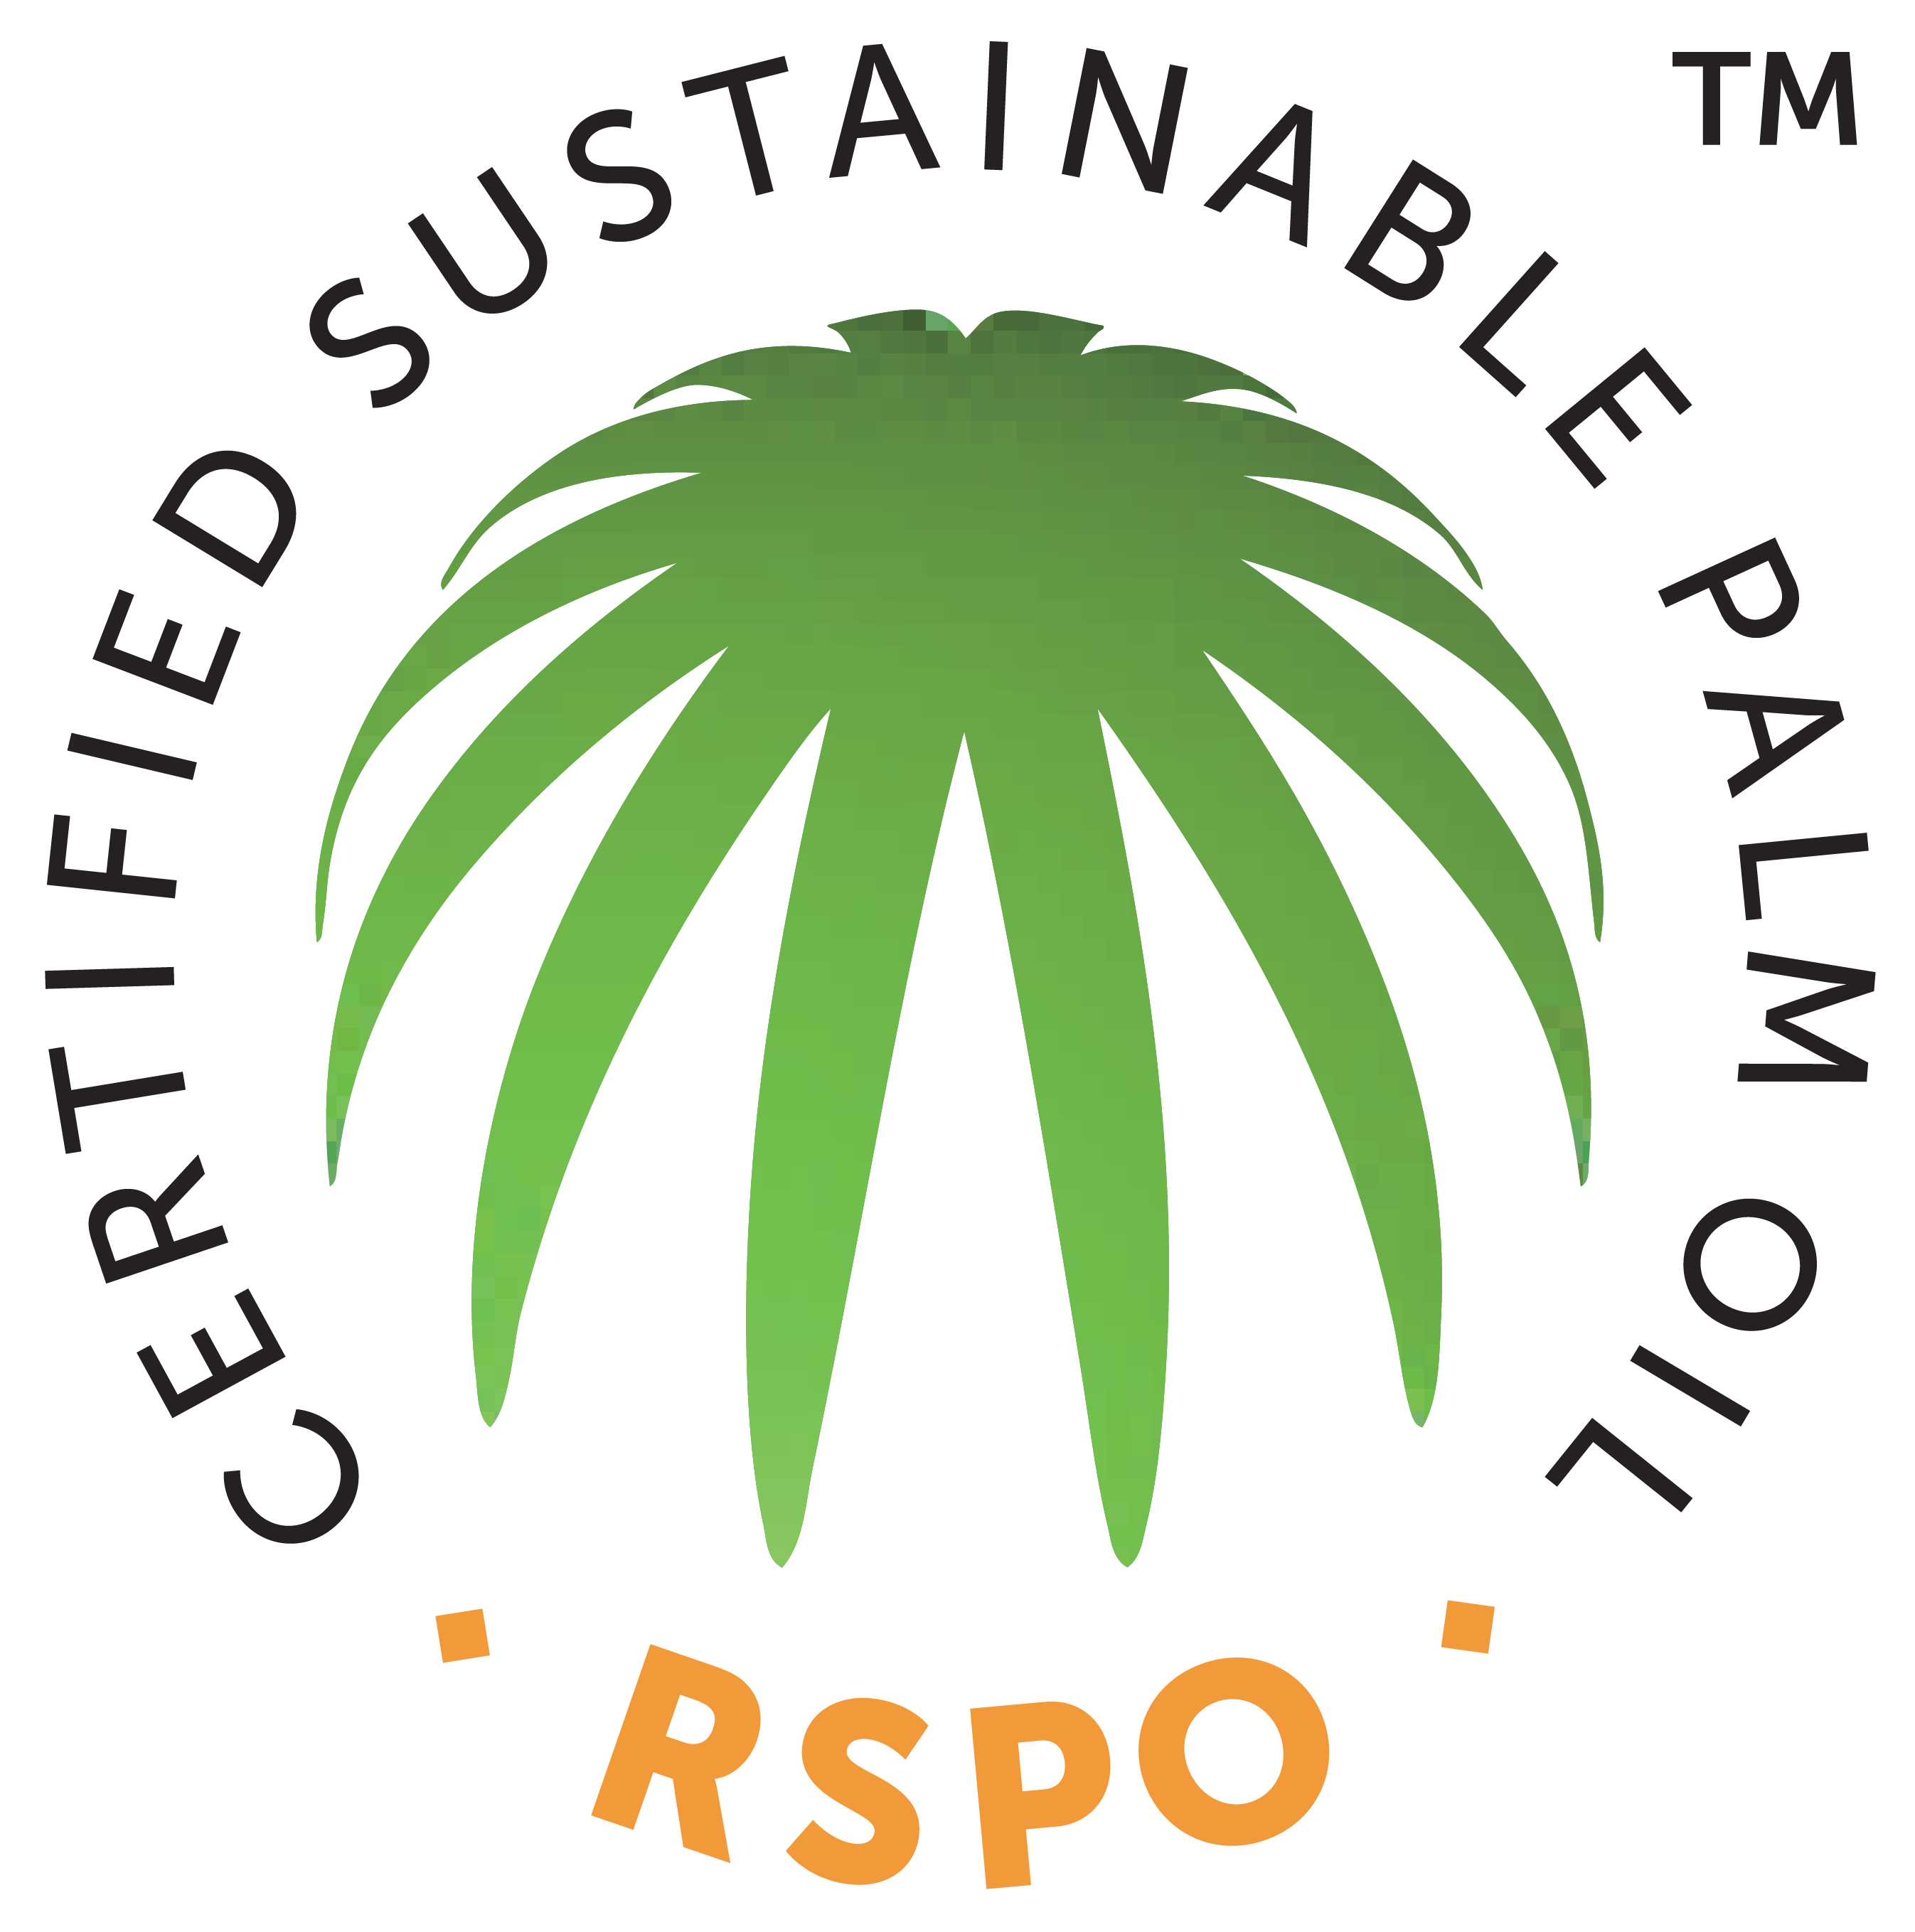 certified-sustainable-palm-oil-rspo-seeklogo.com-01-1